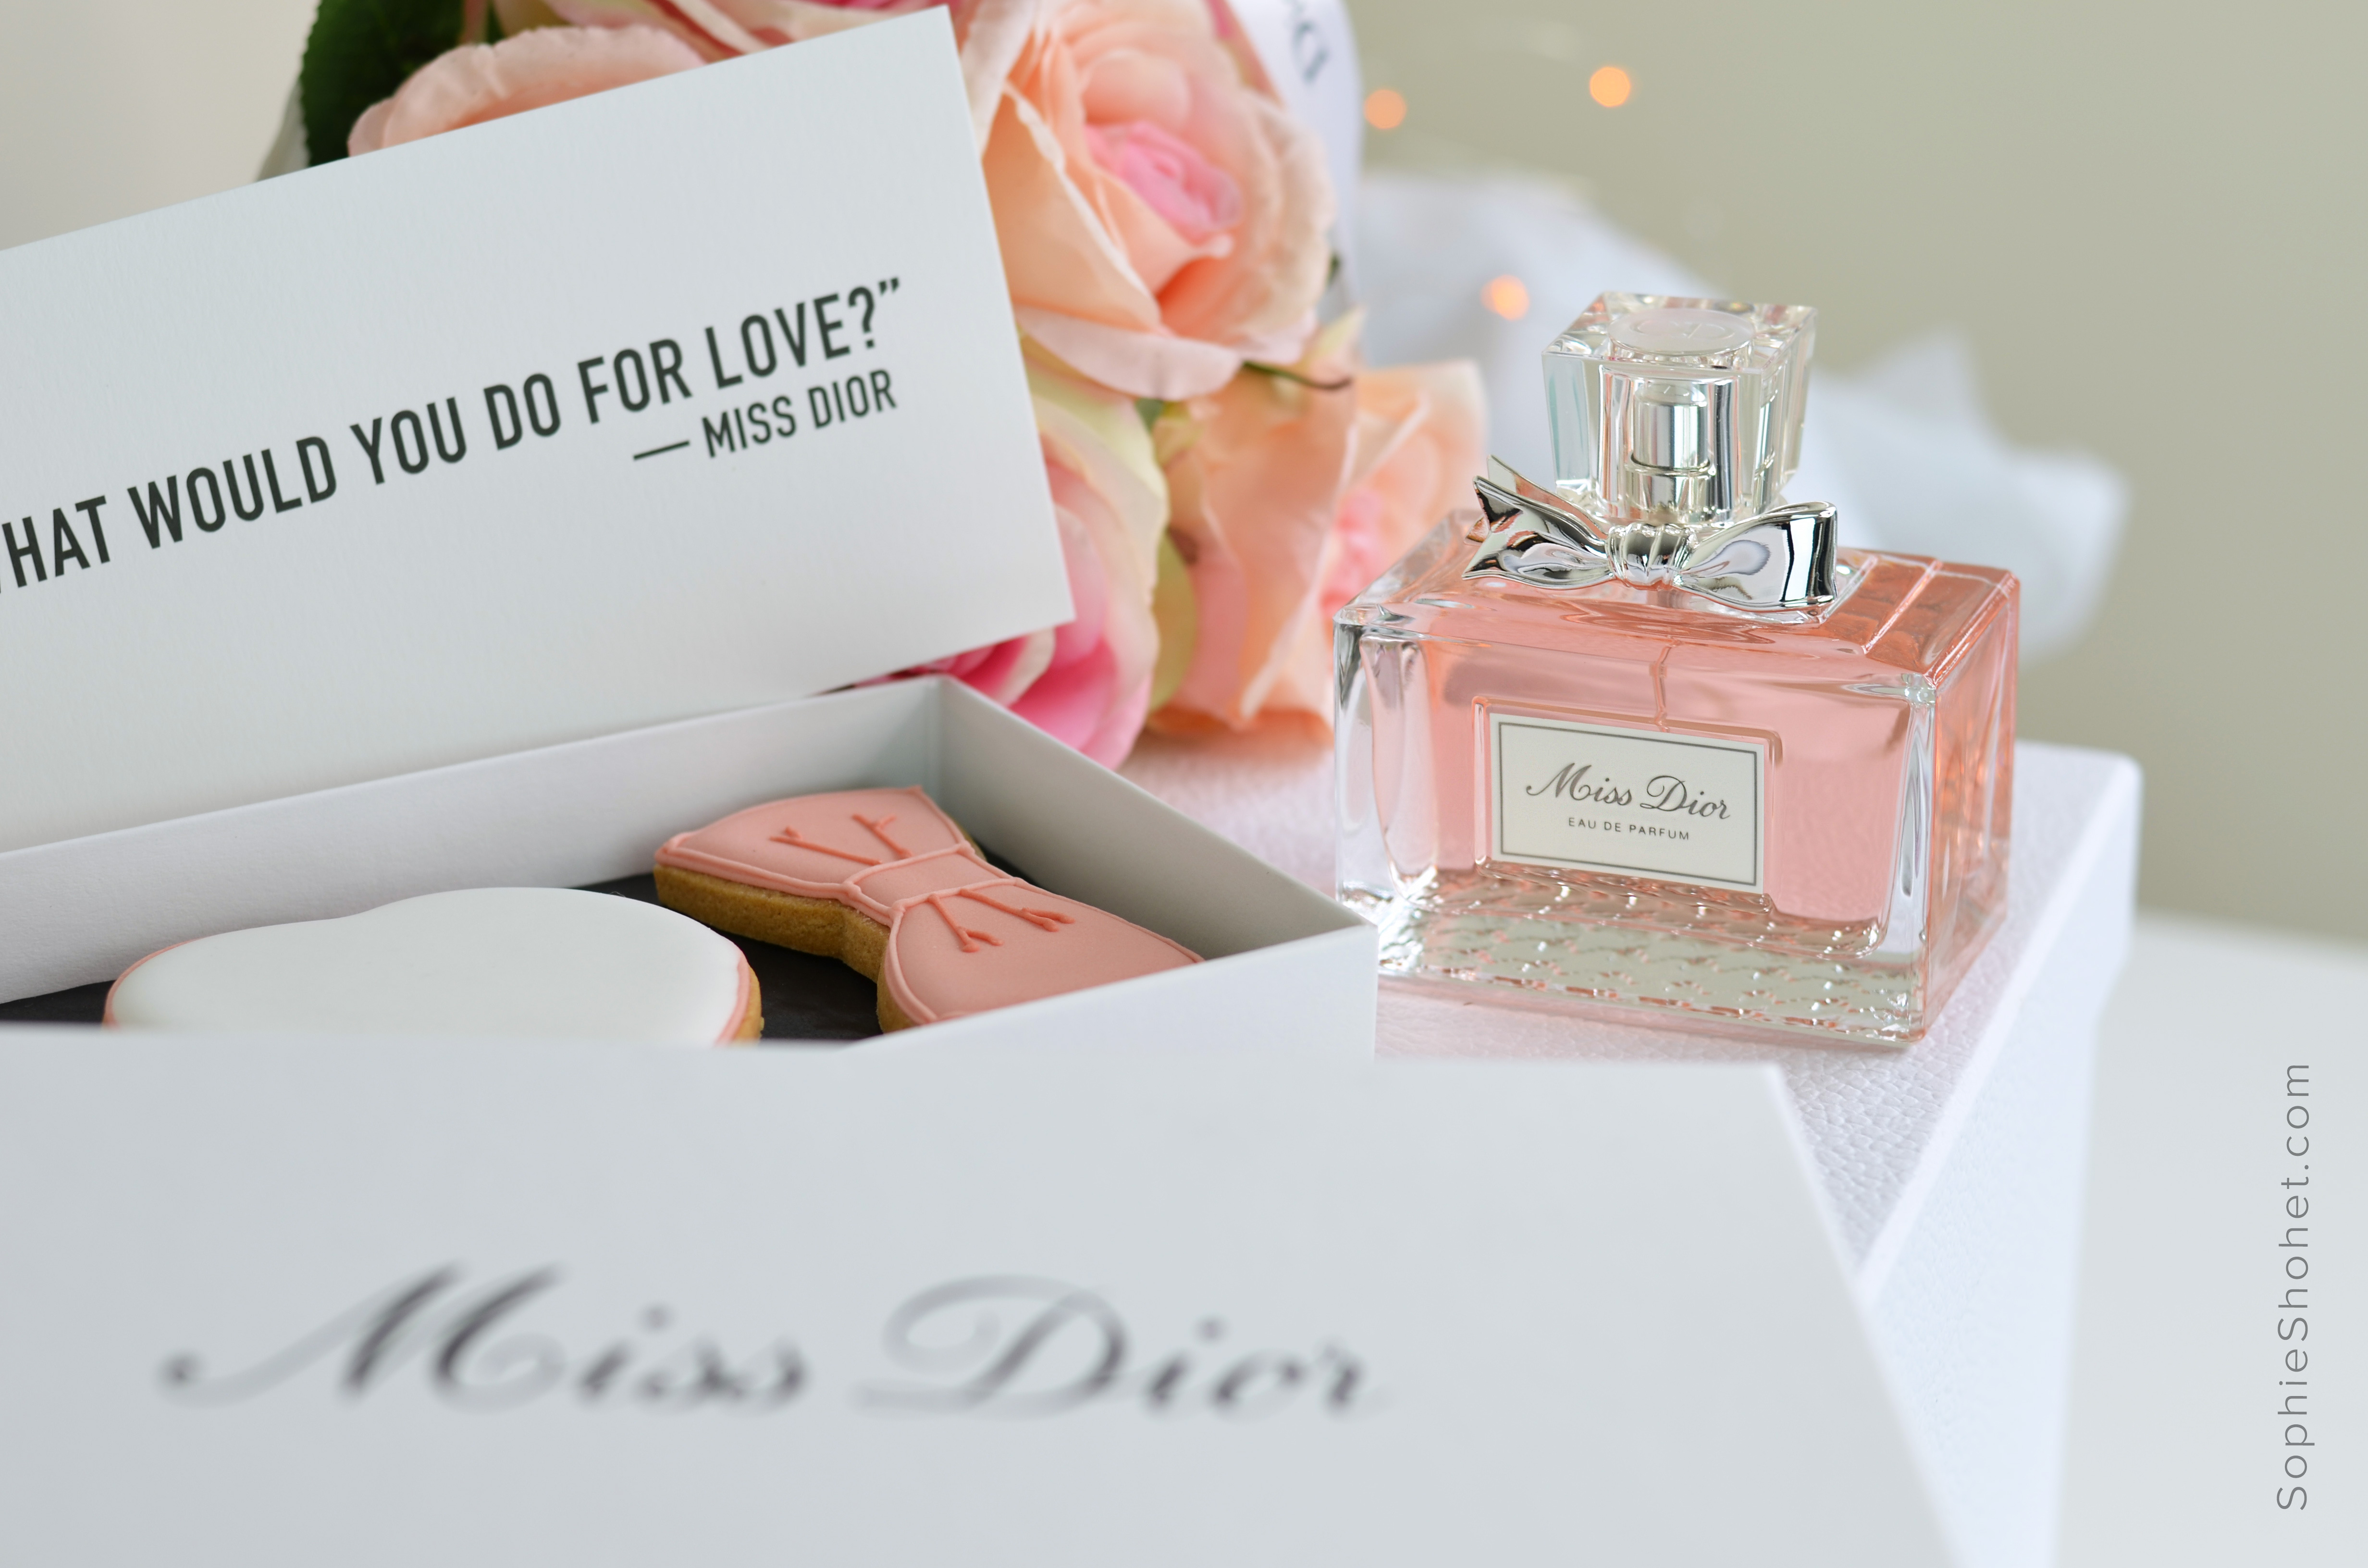 The new 2017 Miss Dior EDP